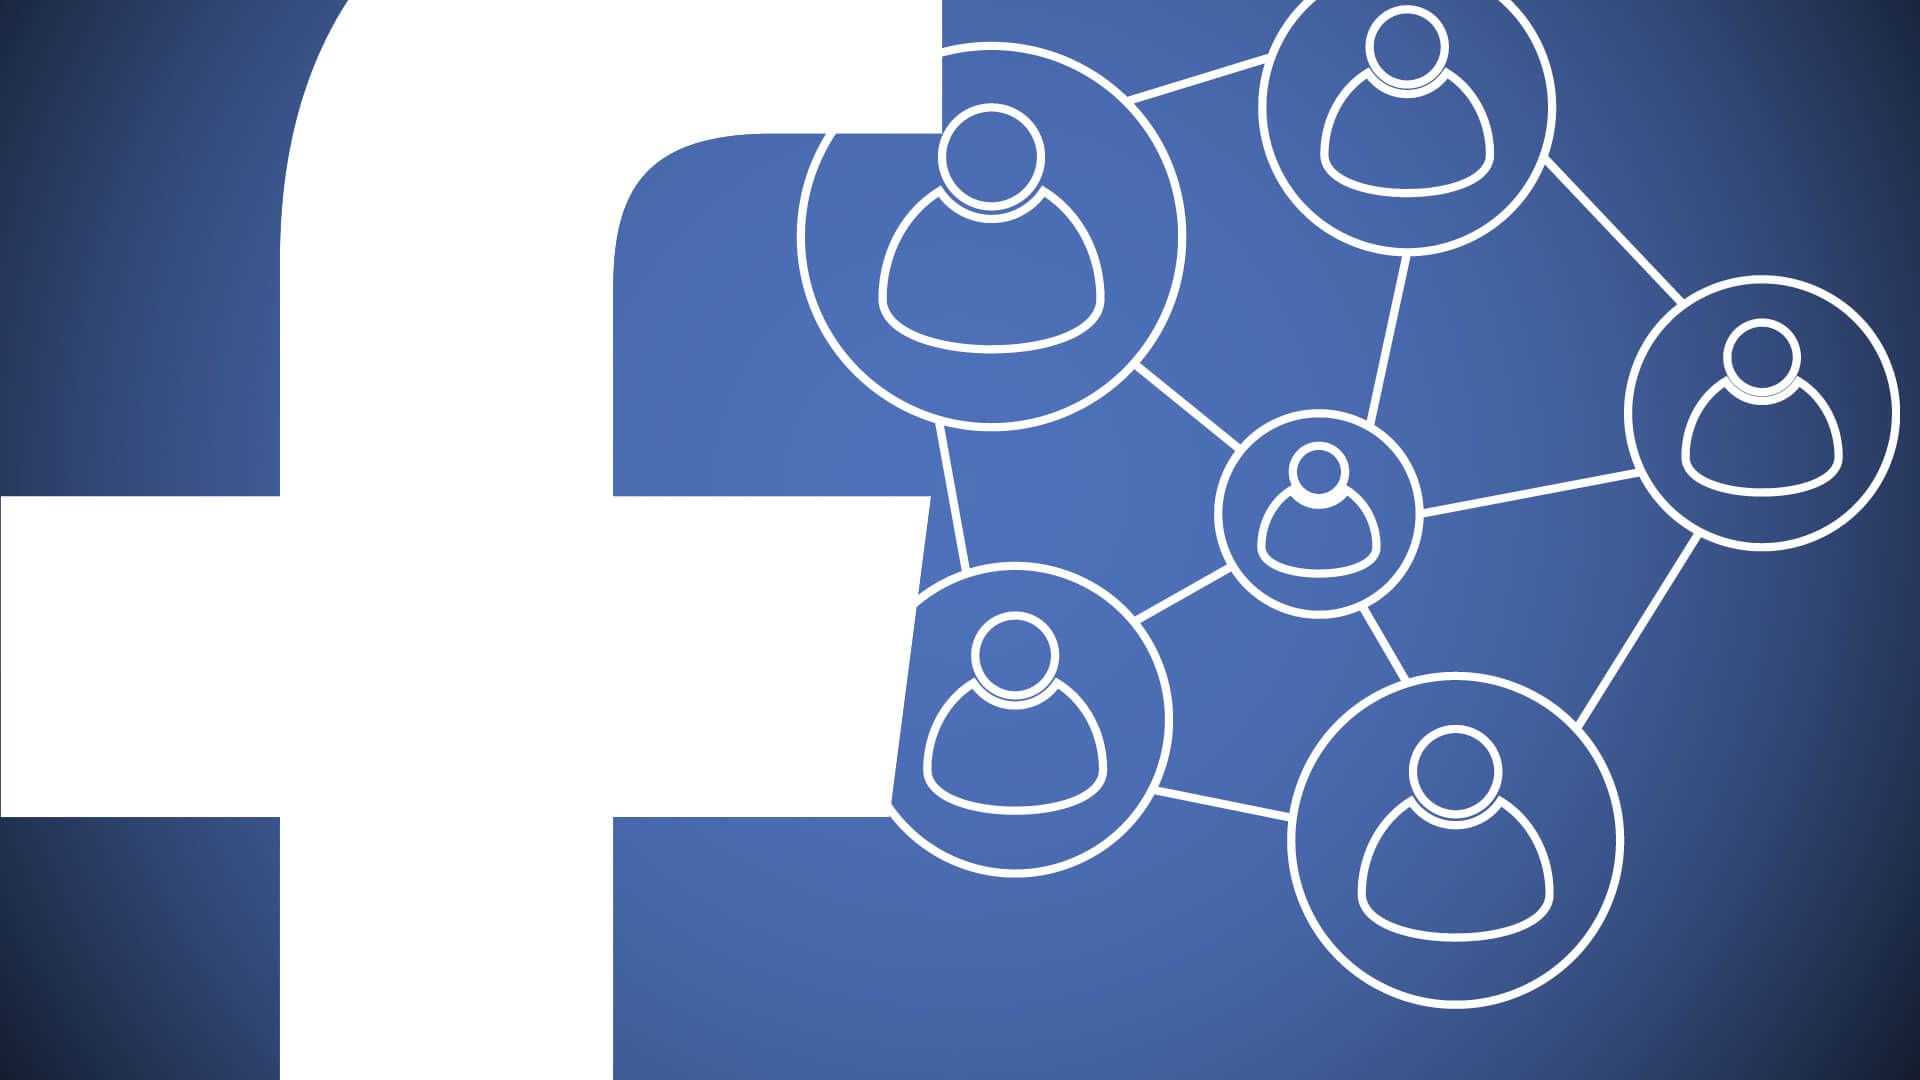 facebook-audience-people-users-network-ss-1920